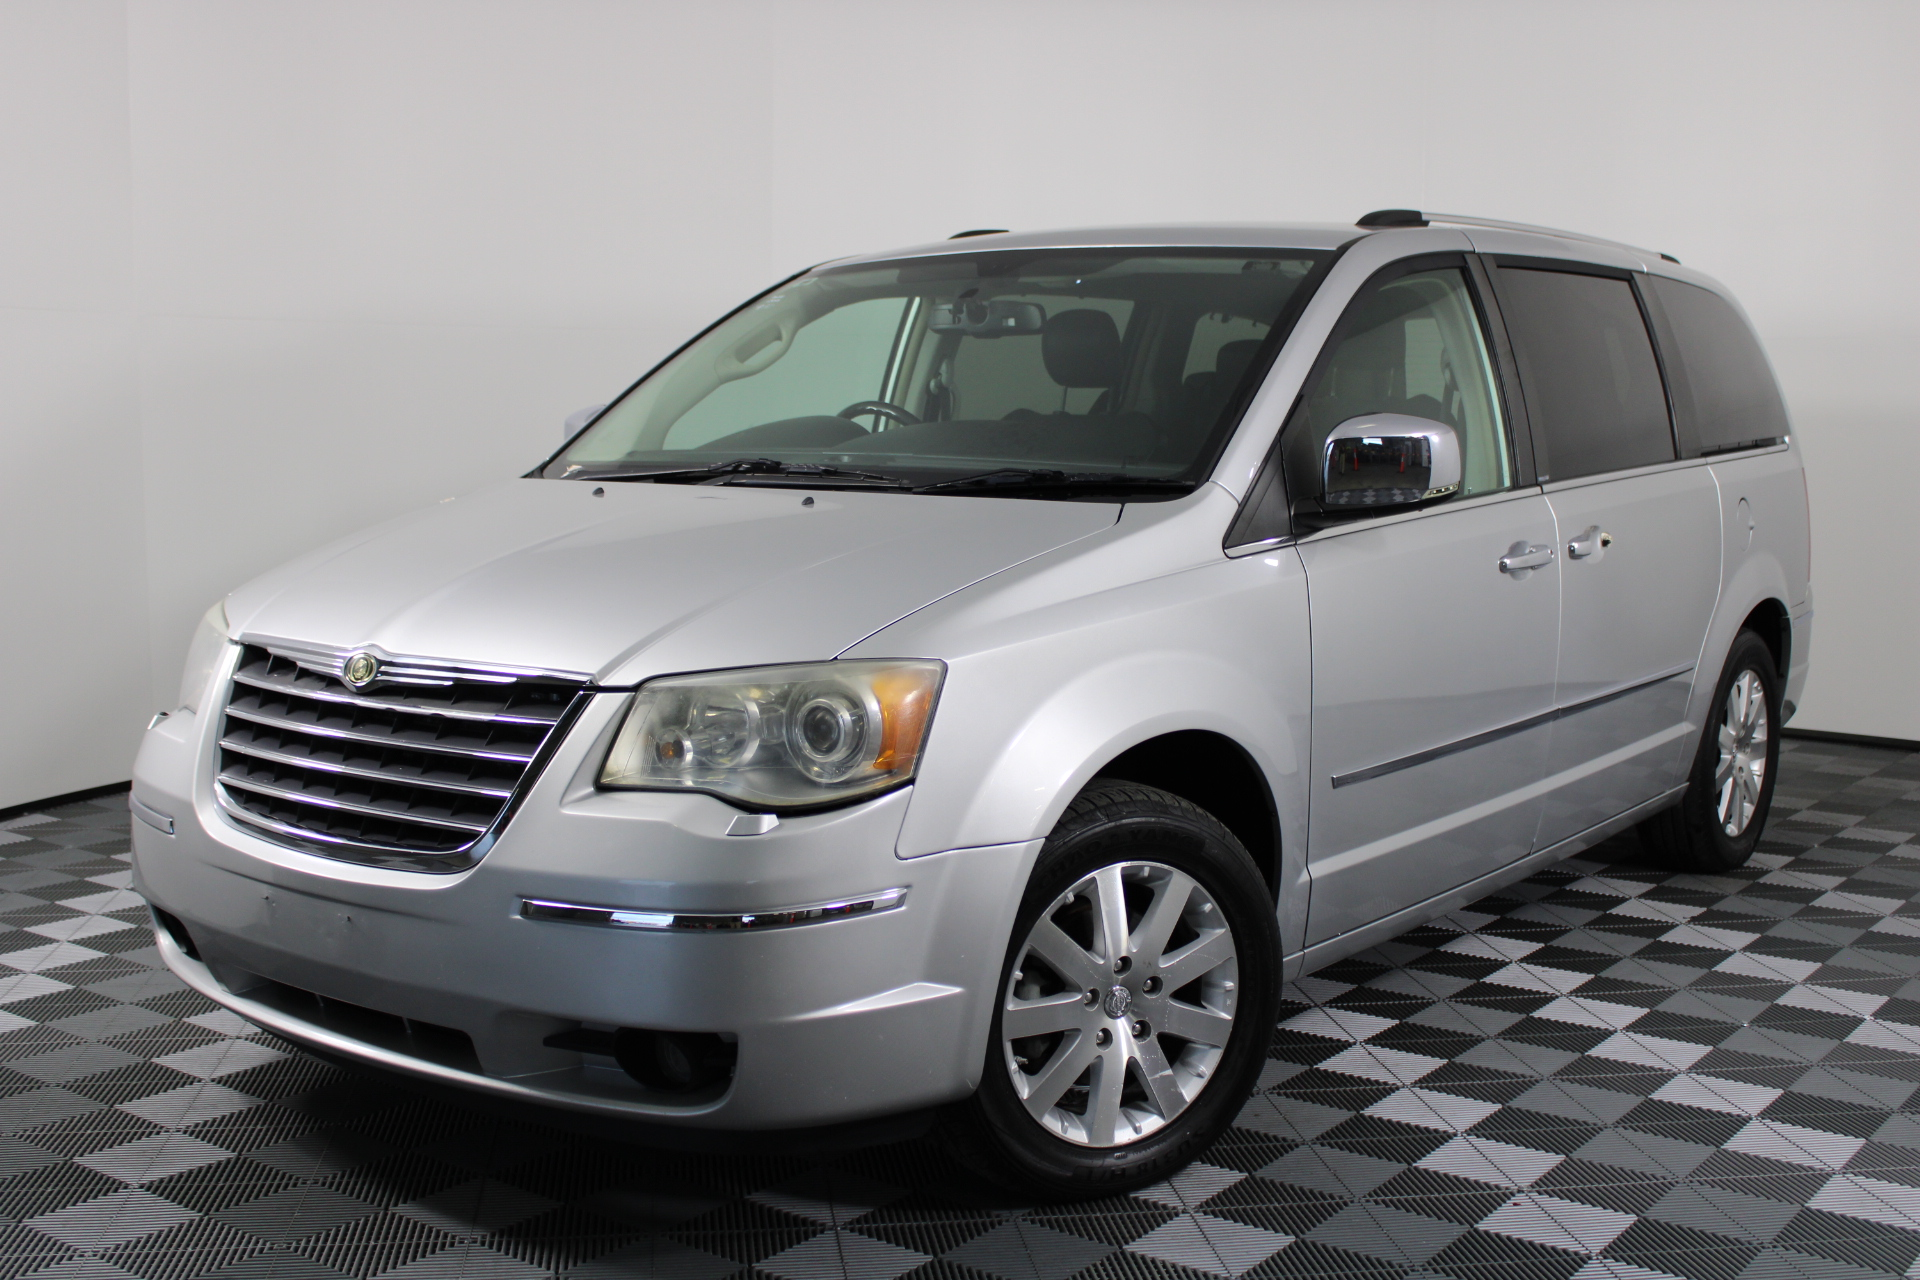 2009 Chrysler Grand Voyager Limited RT Automatic 7 Seats People Mover